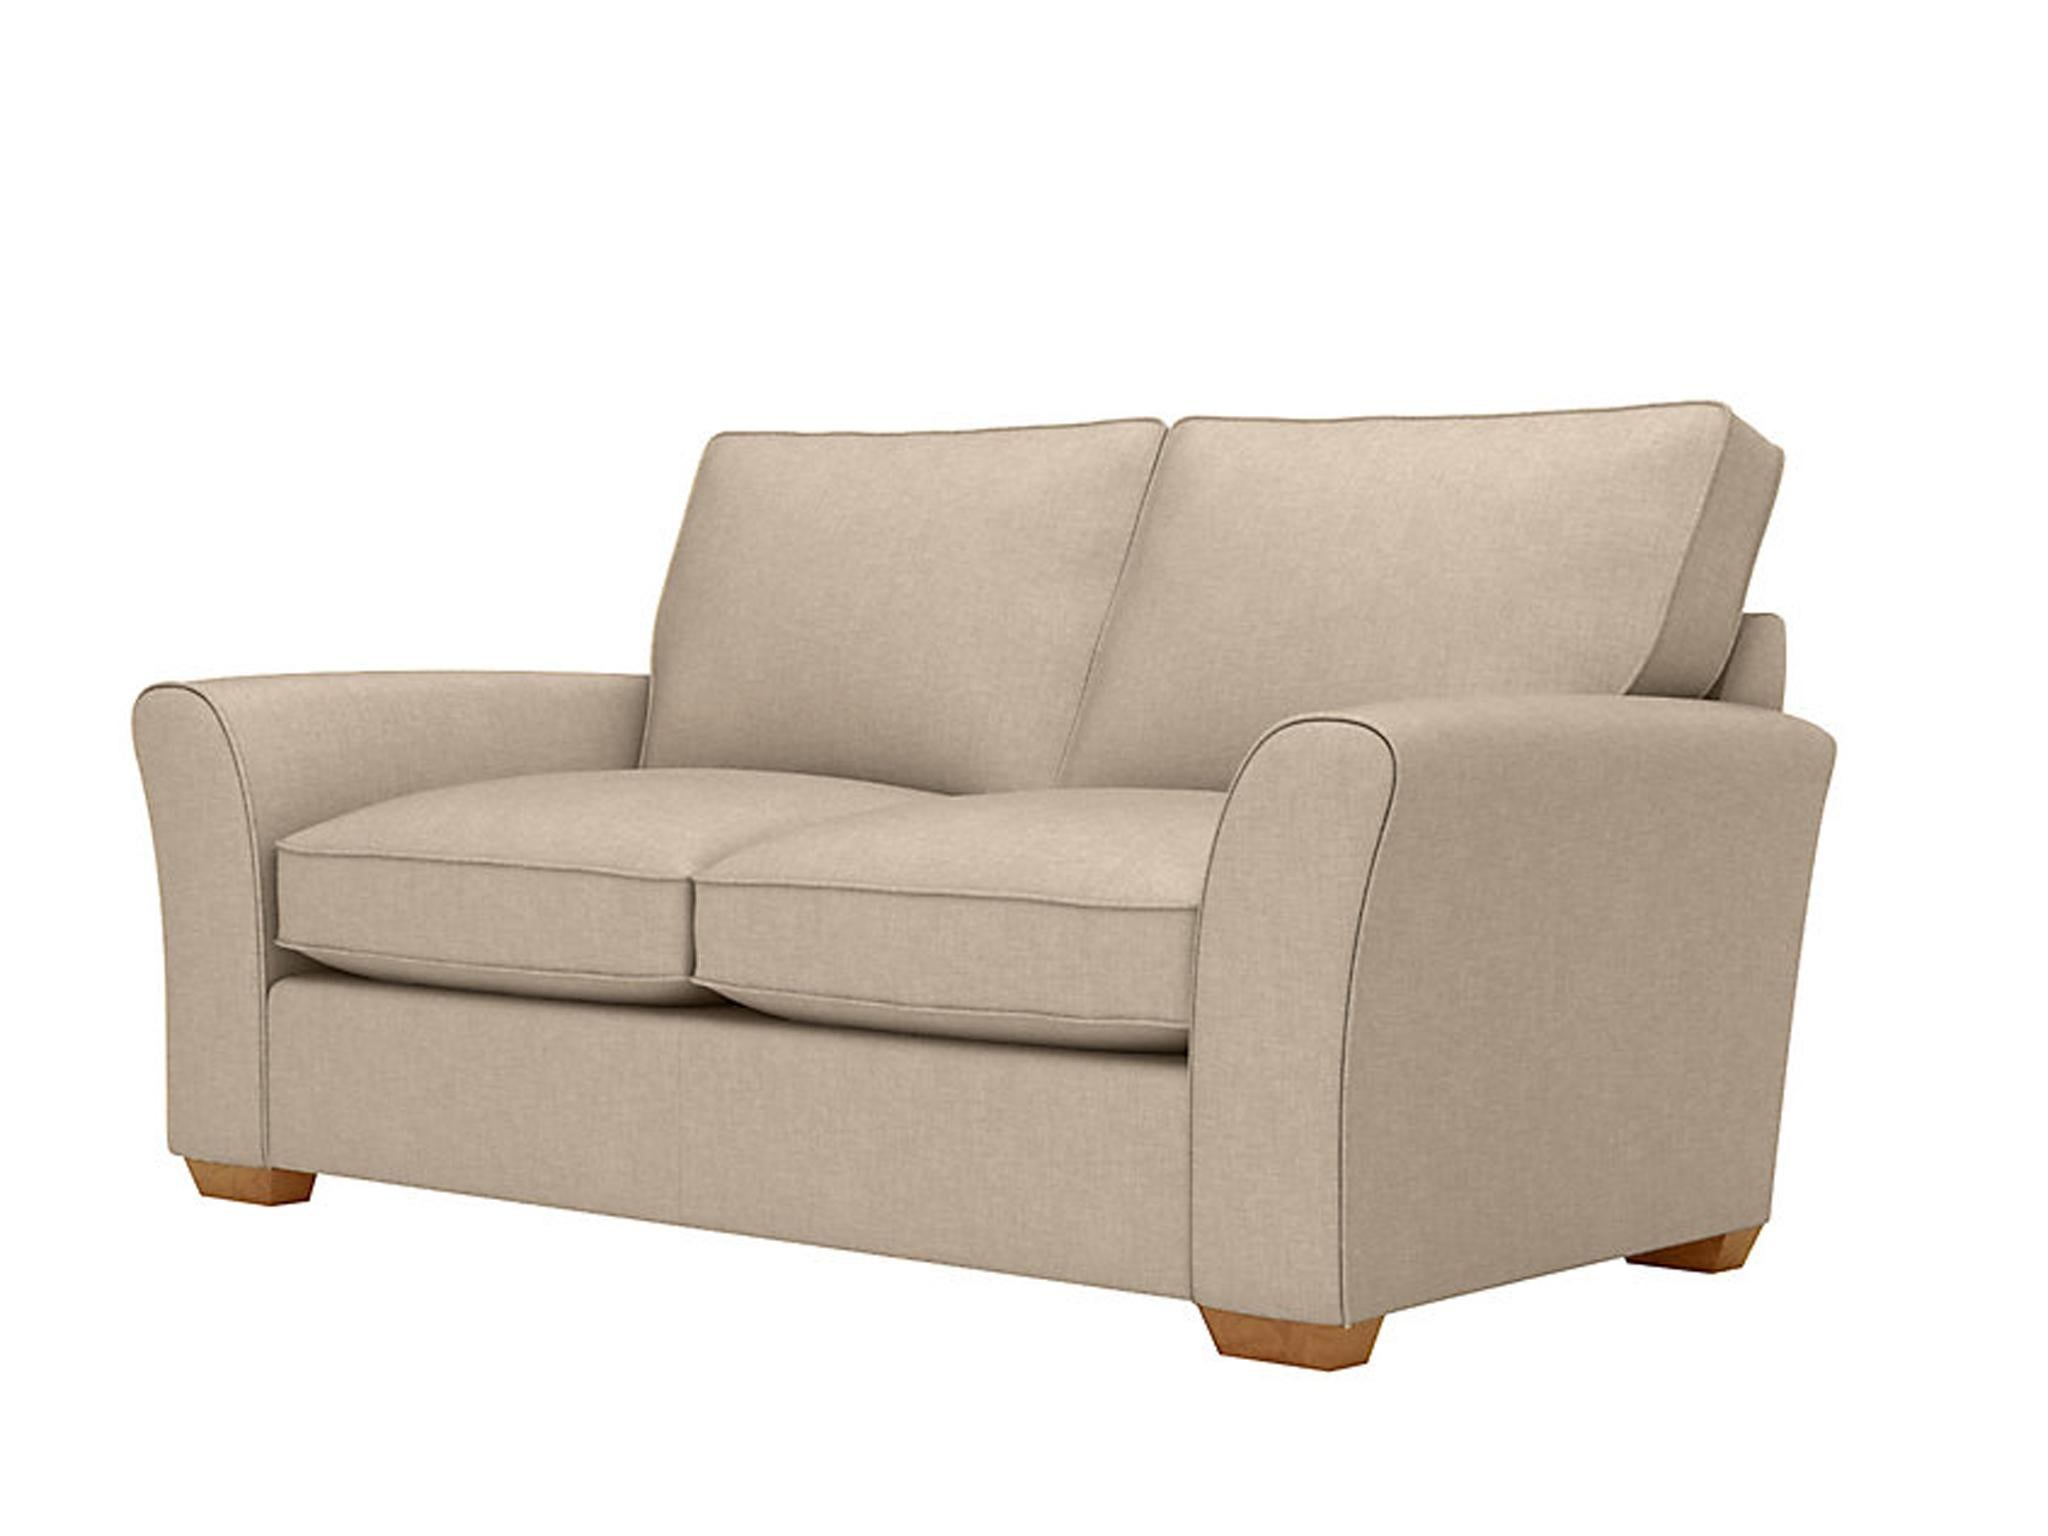 The Plain Looks Of The Lincoln Sofa Means It Can Fit In With Most Schemes,  And It Comes In A Wide Choice Of Leather And Fabric For You To Find The Best  ...